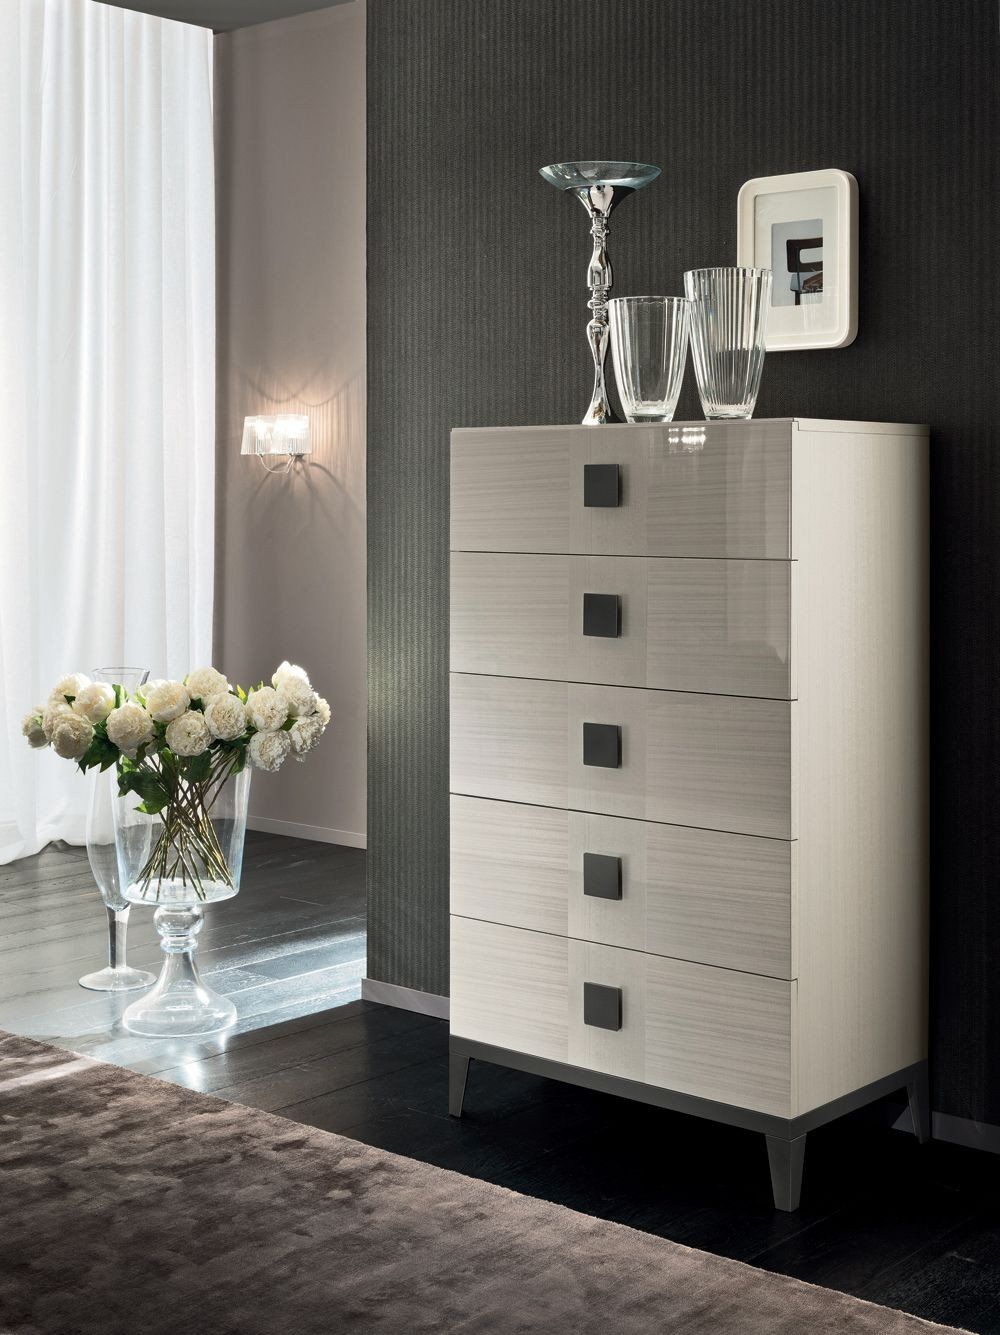 Bedroom Dressers for Sale Beautiful Mont Blanc 5 Drawer Chest by Alf Da Fre